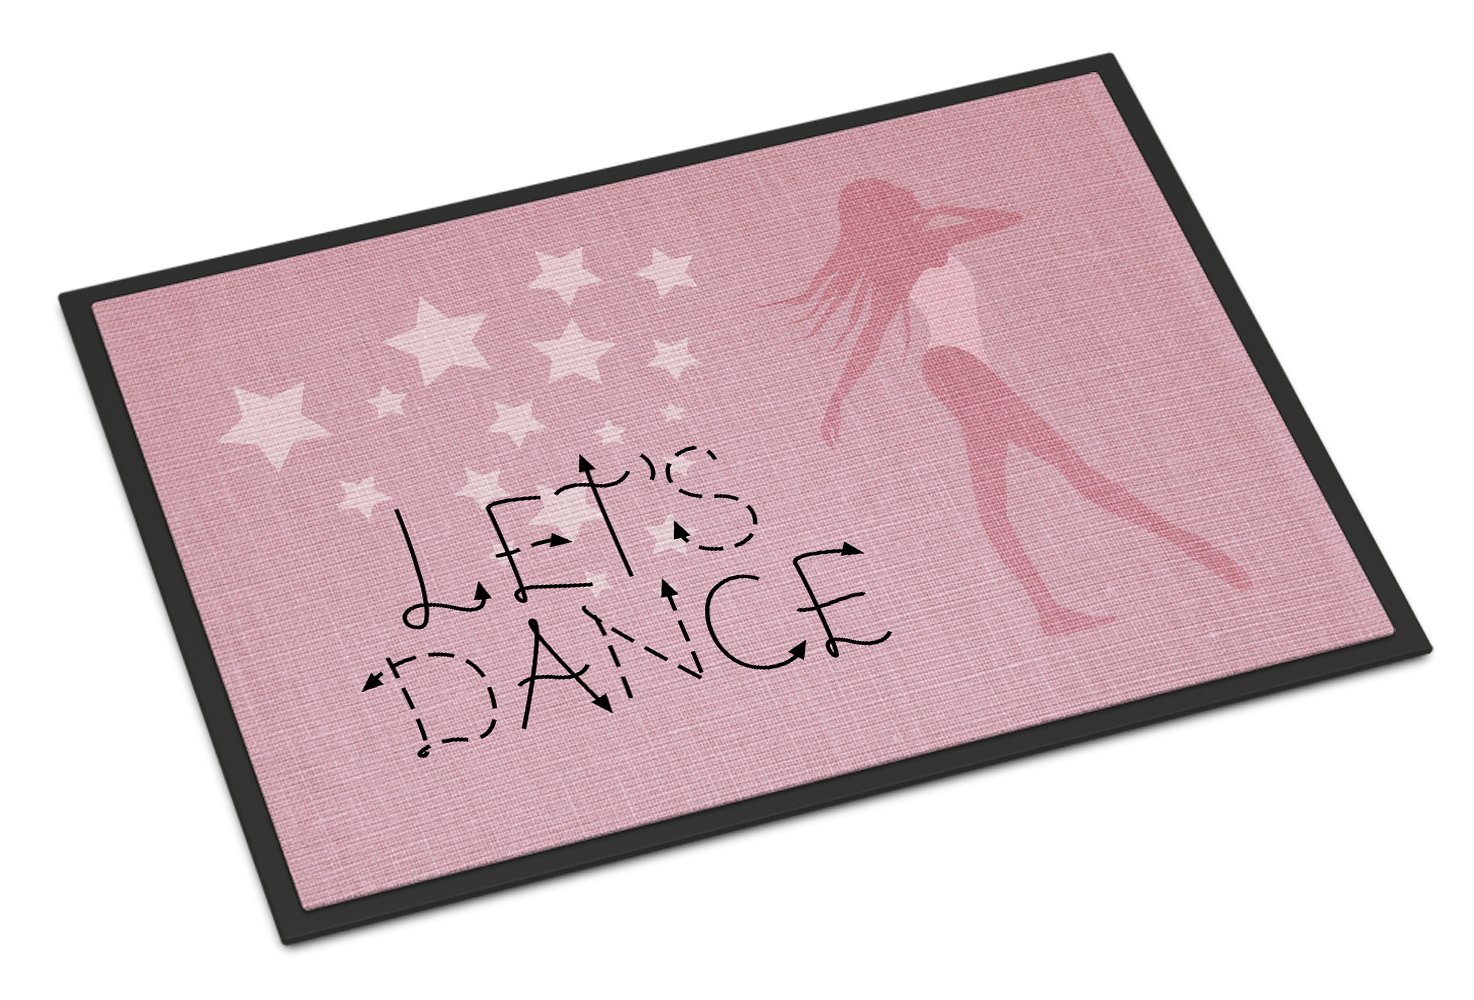 Caroline's Treasures Let's Dance Linen Pink Doormat, 24 H x 36 W'', Multicolor by Caroline's Treasures (Image #1)